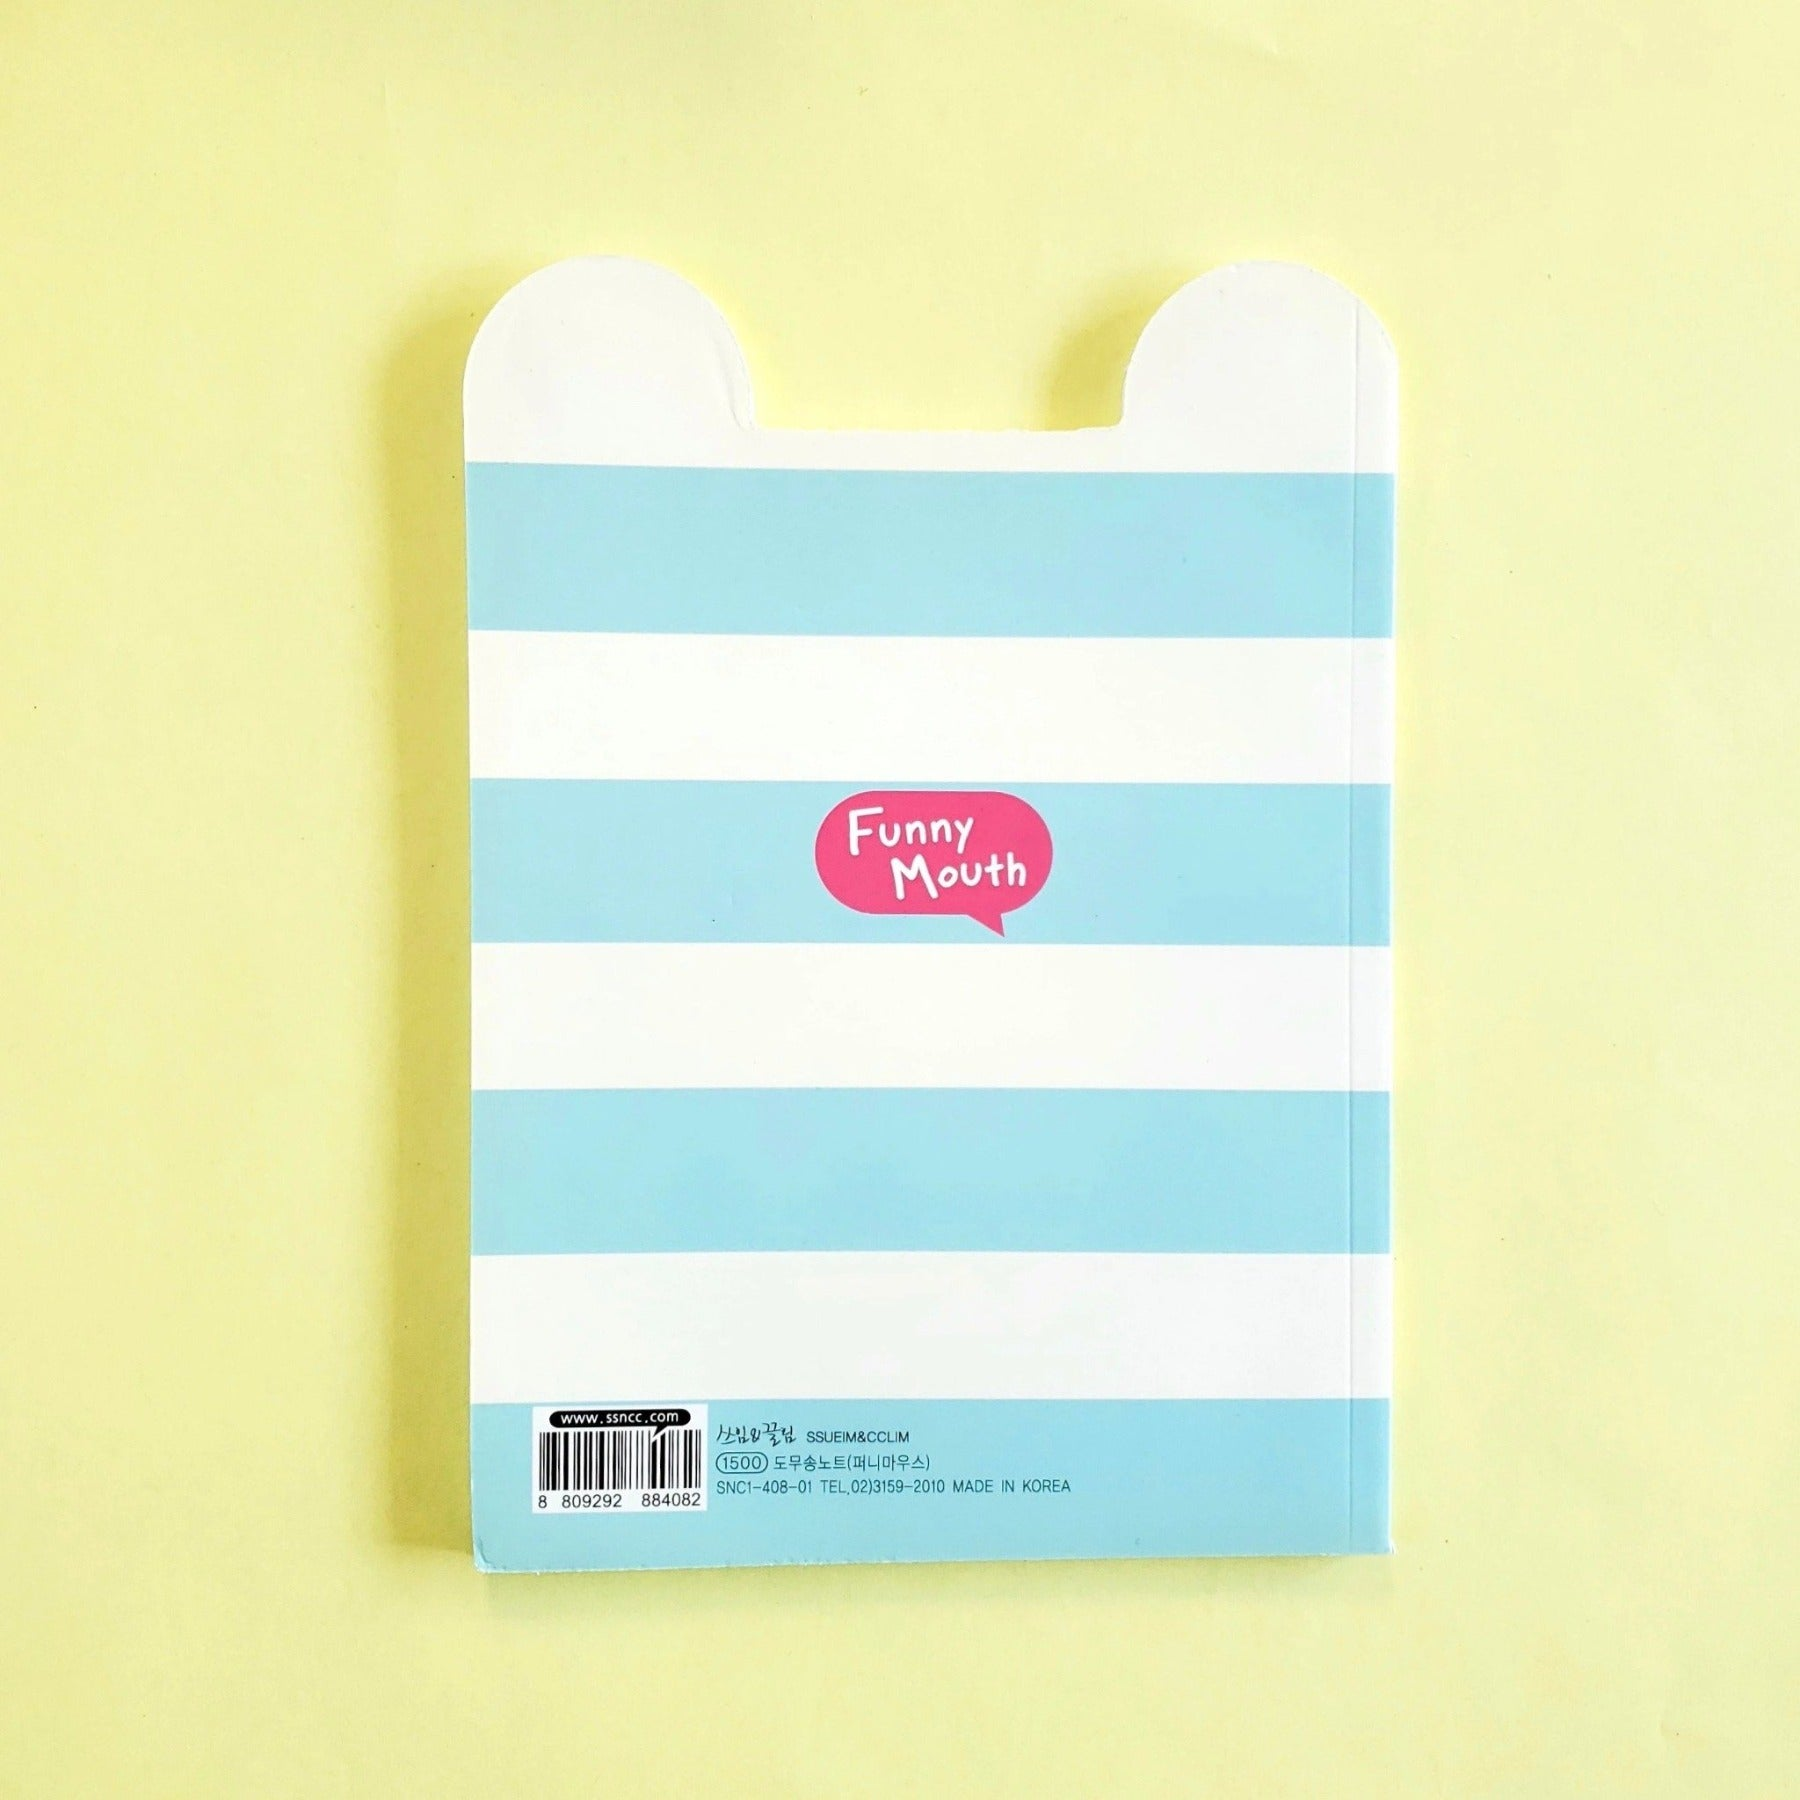 kawaii stationery by ssueim & cclim: funny mouth notebook with blue strips (back cover)